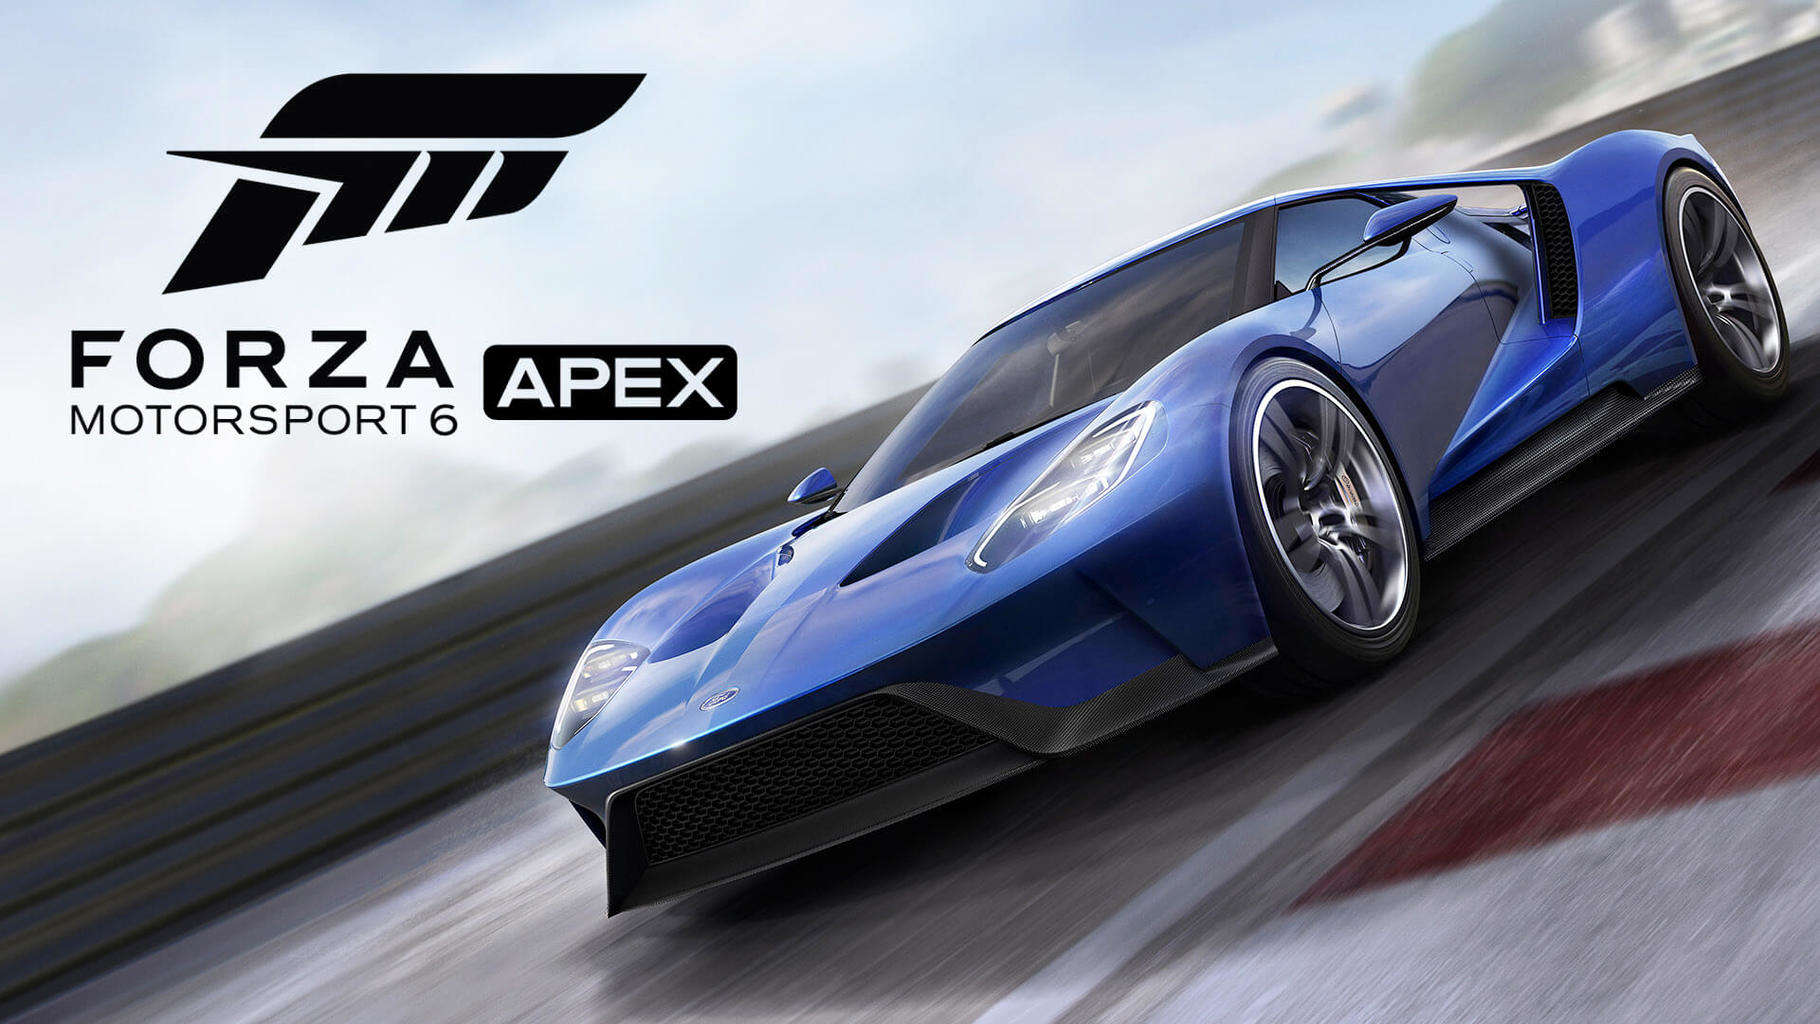 forza motorsport 6 apex windows 10 pc releases as full fledged title with wheel support. Black Bedroom Furniture Sets. Home Design Ideas